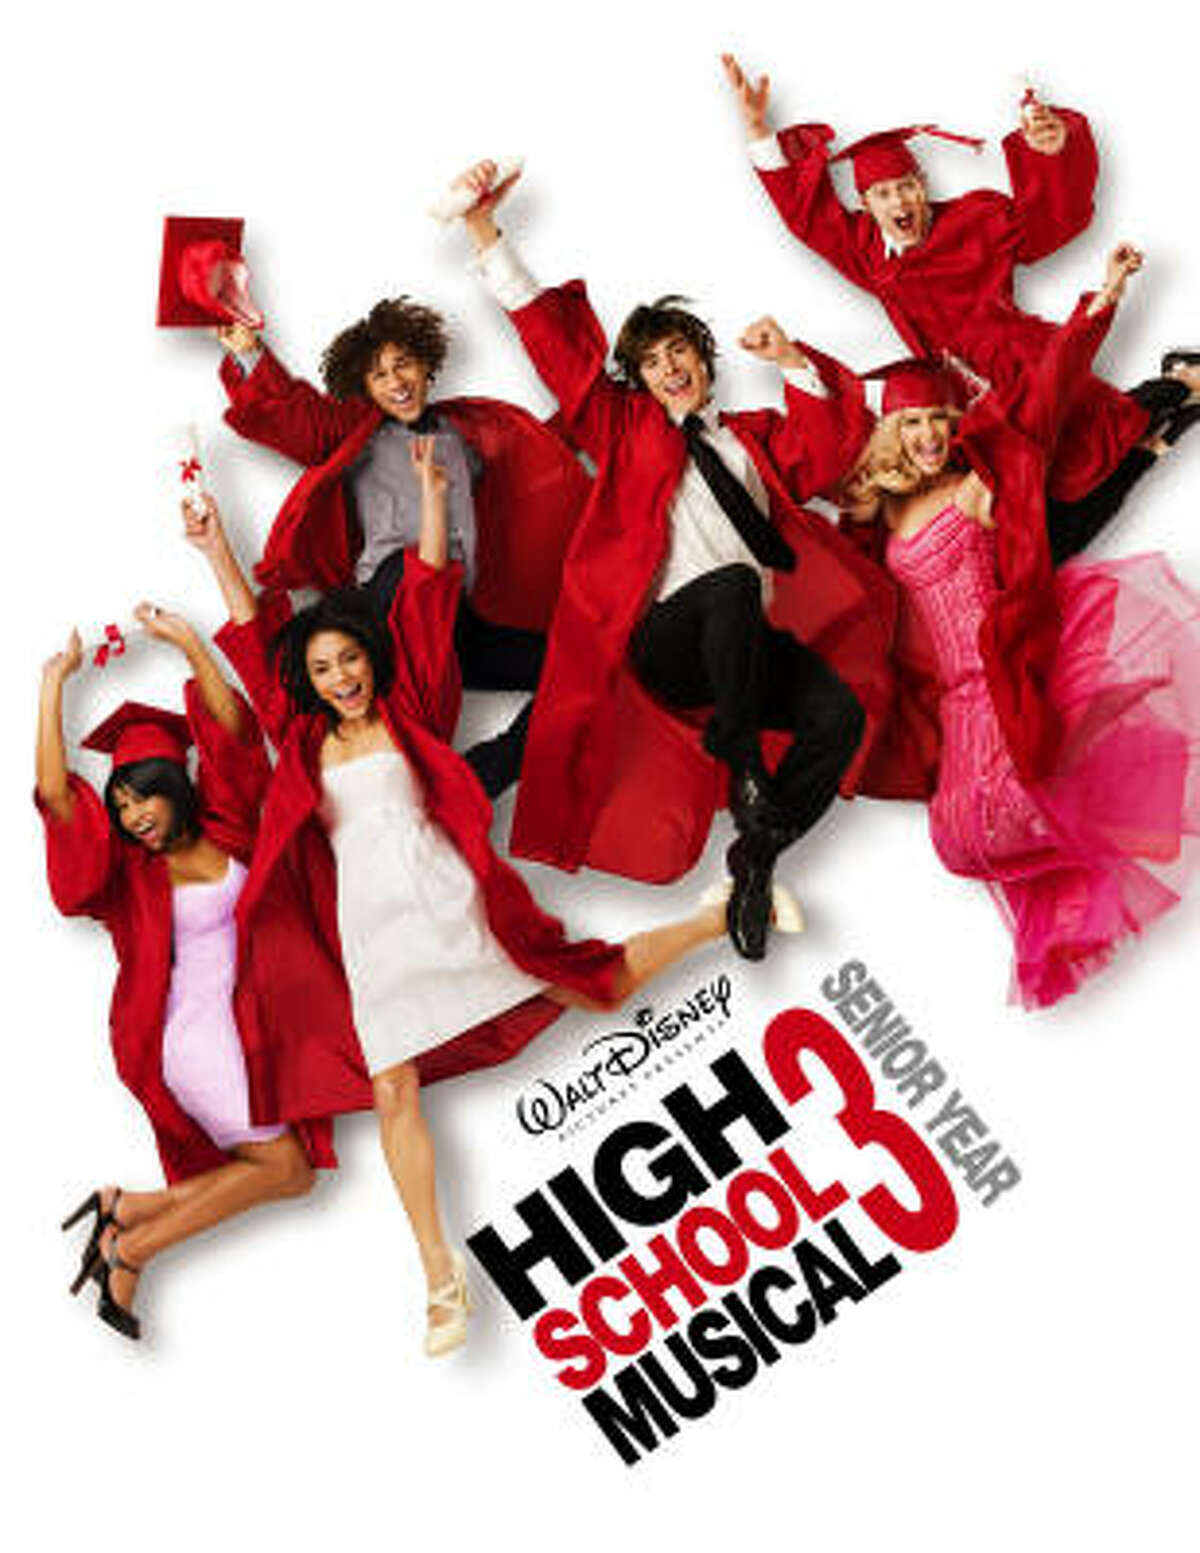 High School Musical : First film: High School Musical (2006) Stars: Zac Efron, Vanessa Hudgens, Corbin Bleu Latest: High School Musical 3 (2008) Stars: Zac Efron, Vanessa Hudgens, Corbin Bleu Why it won't die: There's a lot of people out there who'd rather see teens work out their angst with dancing and singing than with more the more conventional sex, drinking and rebellion. Up next: High School Musical 4: HSM3 features sophomores who will soon be upperclassmen.